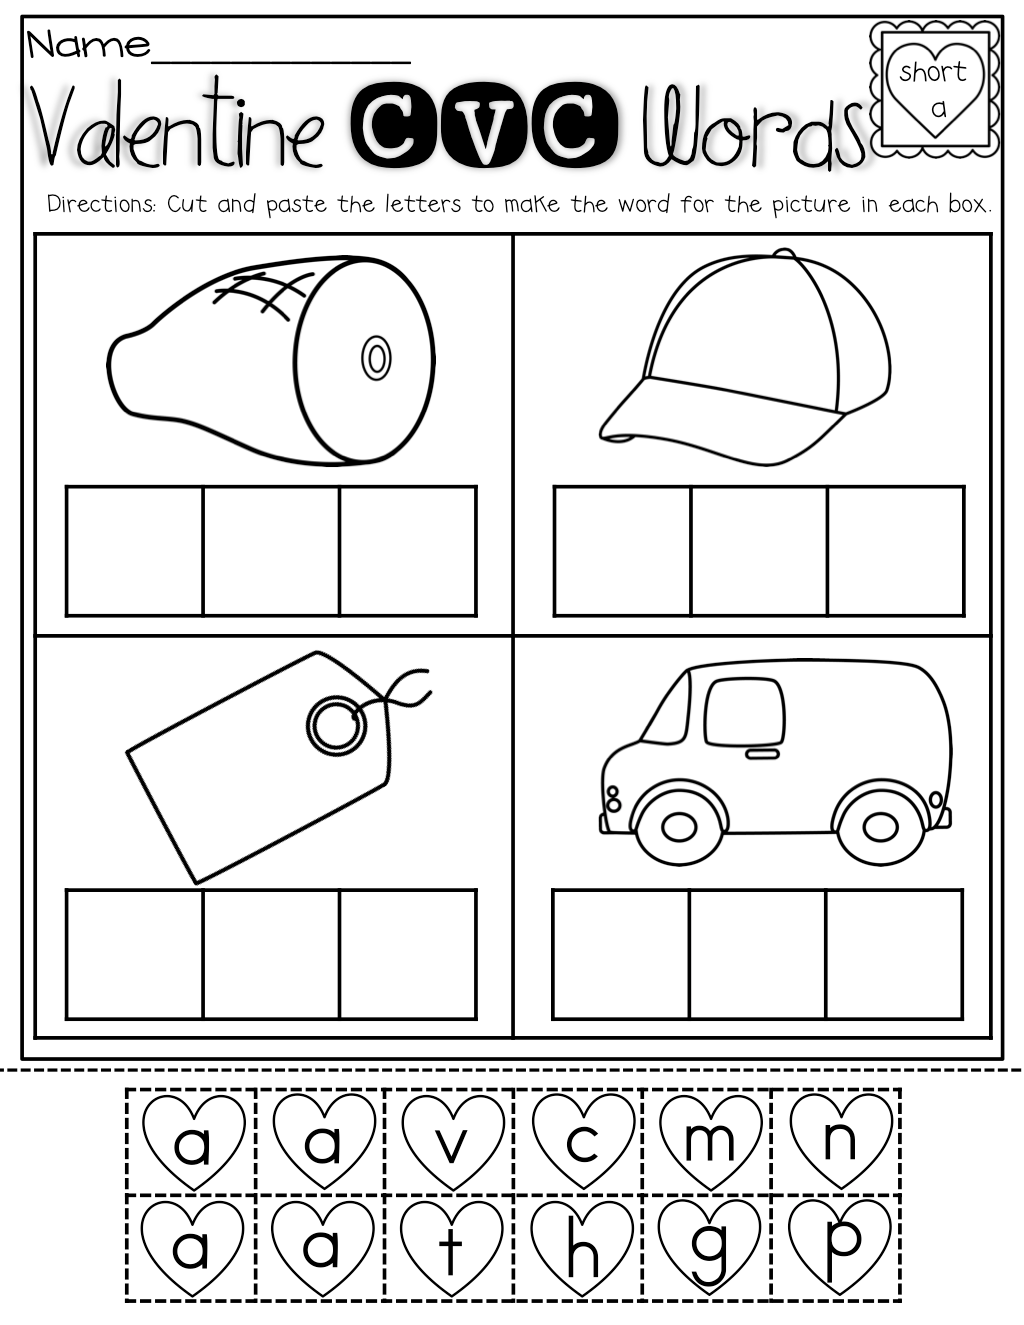 Free Printable Cut And Paste Worksheet For First Grade